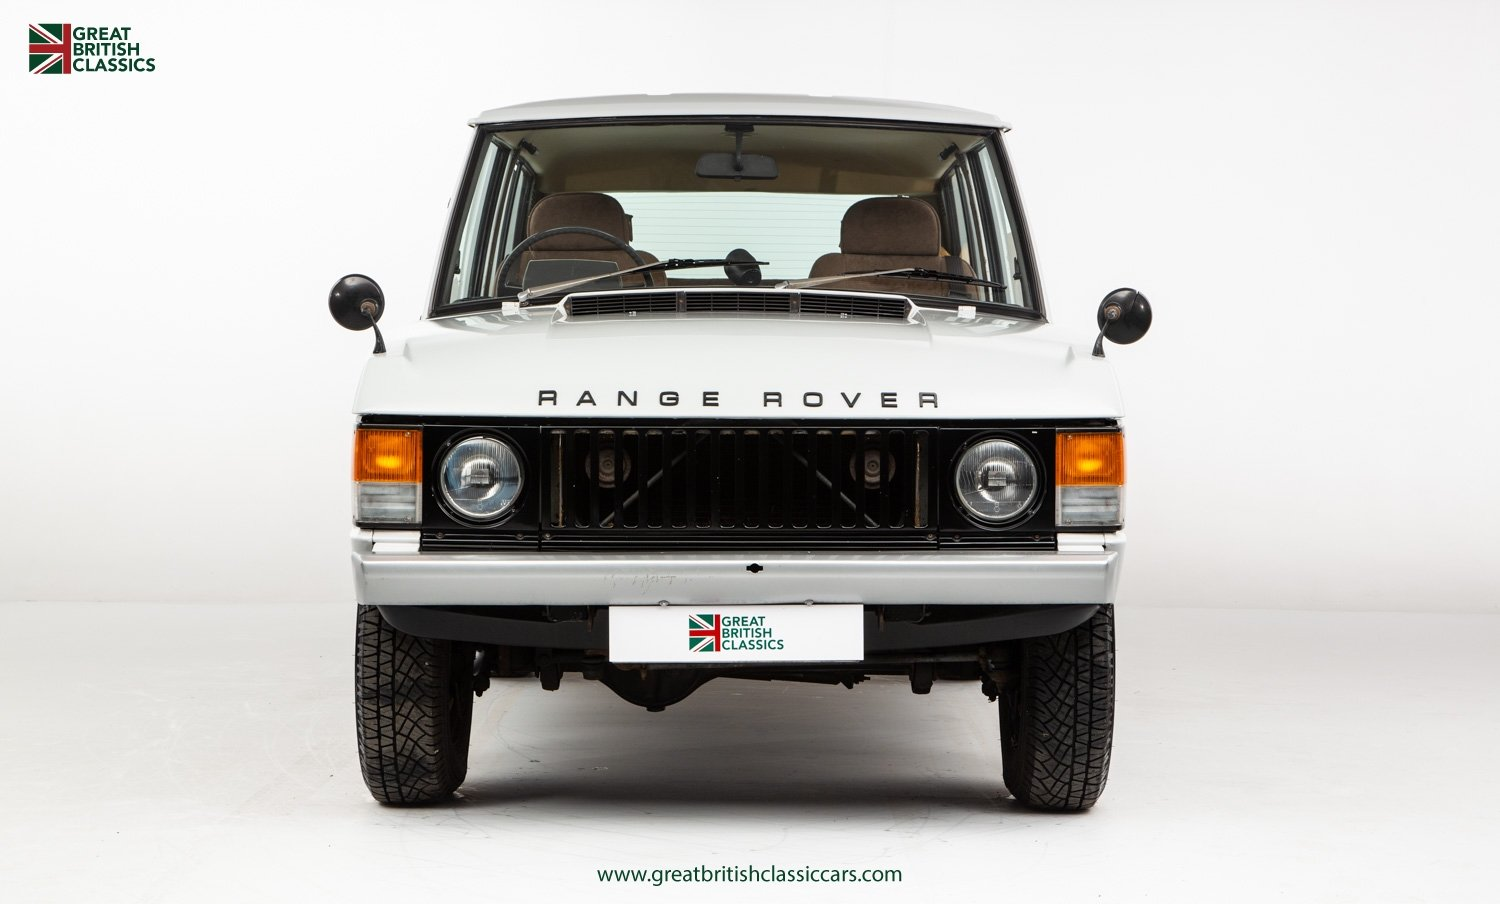 1972 RANGE ROVER SERIES 1 // SUFFIX A // FAMILY OWNED FROM NEW For Sale (picture 1 of 21)